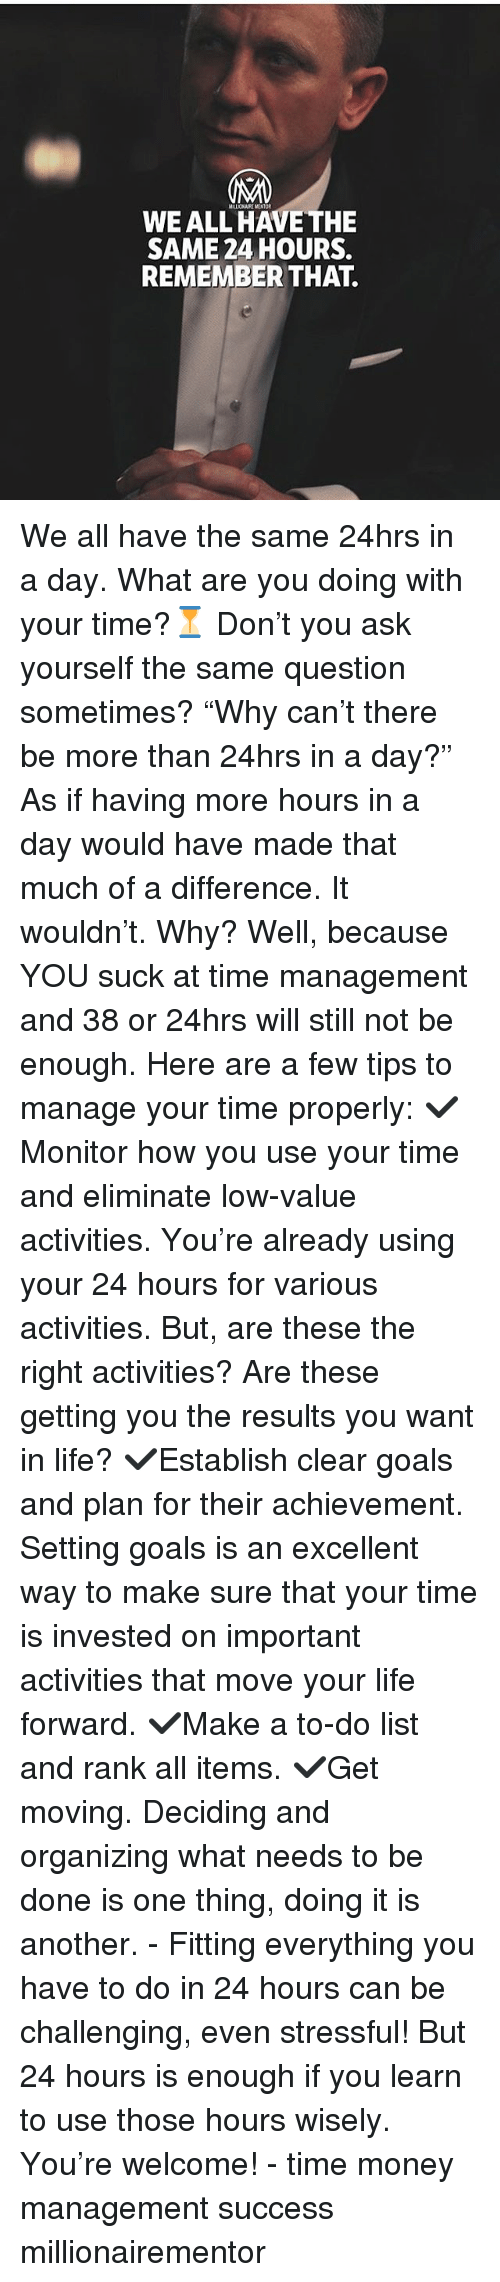 """Goals, Life, and Memes: MLIONARI MENTOR  WE ALL HAVE THE  SAME 24 HOURS.  REMEMBER THAT. We all have the same 24hrs in a day. What are you doing with your time?⏳ Don't you ask yourself the same question sometimes? """"Why can't there be more than 24hrs in a day?"""" As if having more hours in a day would have made that much of a difference. It wouldn't. Why? Well, because YOU suck at time management and 38 or 24hrs will still not be enough. Here are a few tips to manage your time properly: ✔️Monitor how you use your time and eliminate low-value activities. You're already using your 24 hours for various activities. But, are these the right activities? Are these getting you the results you want in life? ✔️Establish clear goals and plan for their achievement. Setting goals is an excellent way to make sure that your time is invested on important activities that move your life forward. ✔️Make a to-do list and rank all items. ✔️Get moving. Deciding and organizing what needs to be done is one thing, doing it is another. - Fitting everything you have to do in 24 hours can be challenging, even stressful! But 24 hours is enough if you learn to use those hours wisely. You're welcome! - time money management success millionairementor"""